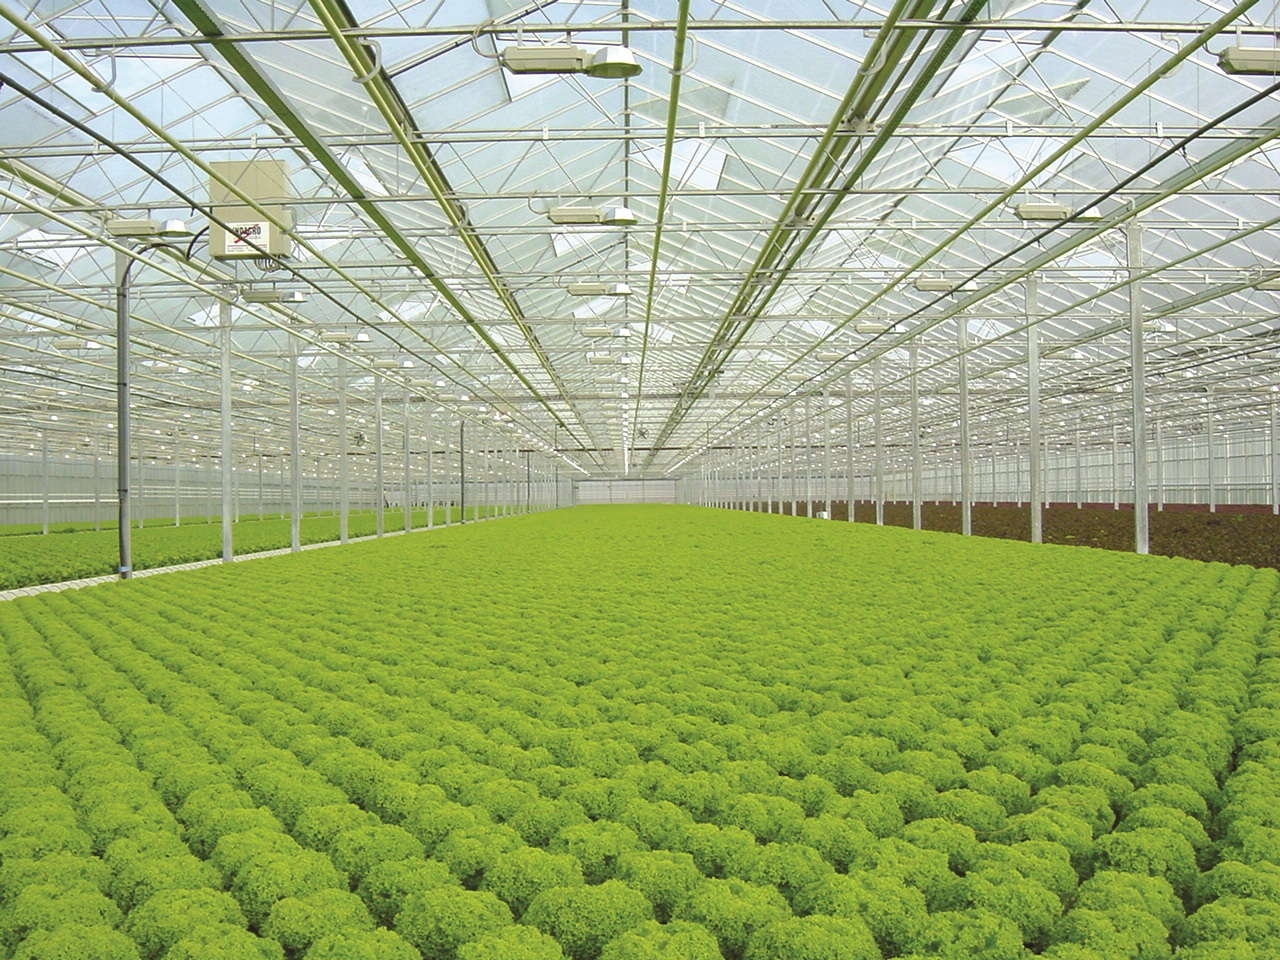 Hydroponics Give Growers Control Greenhouse Grower